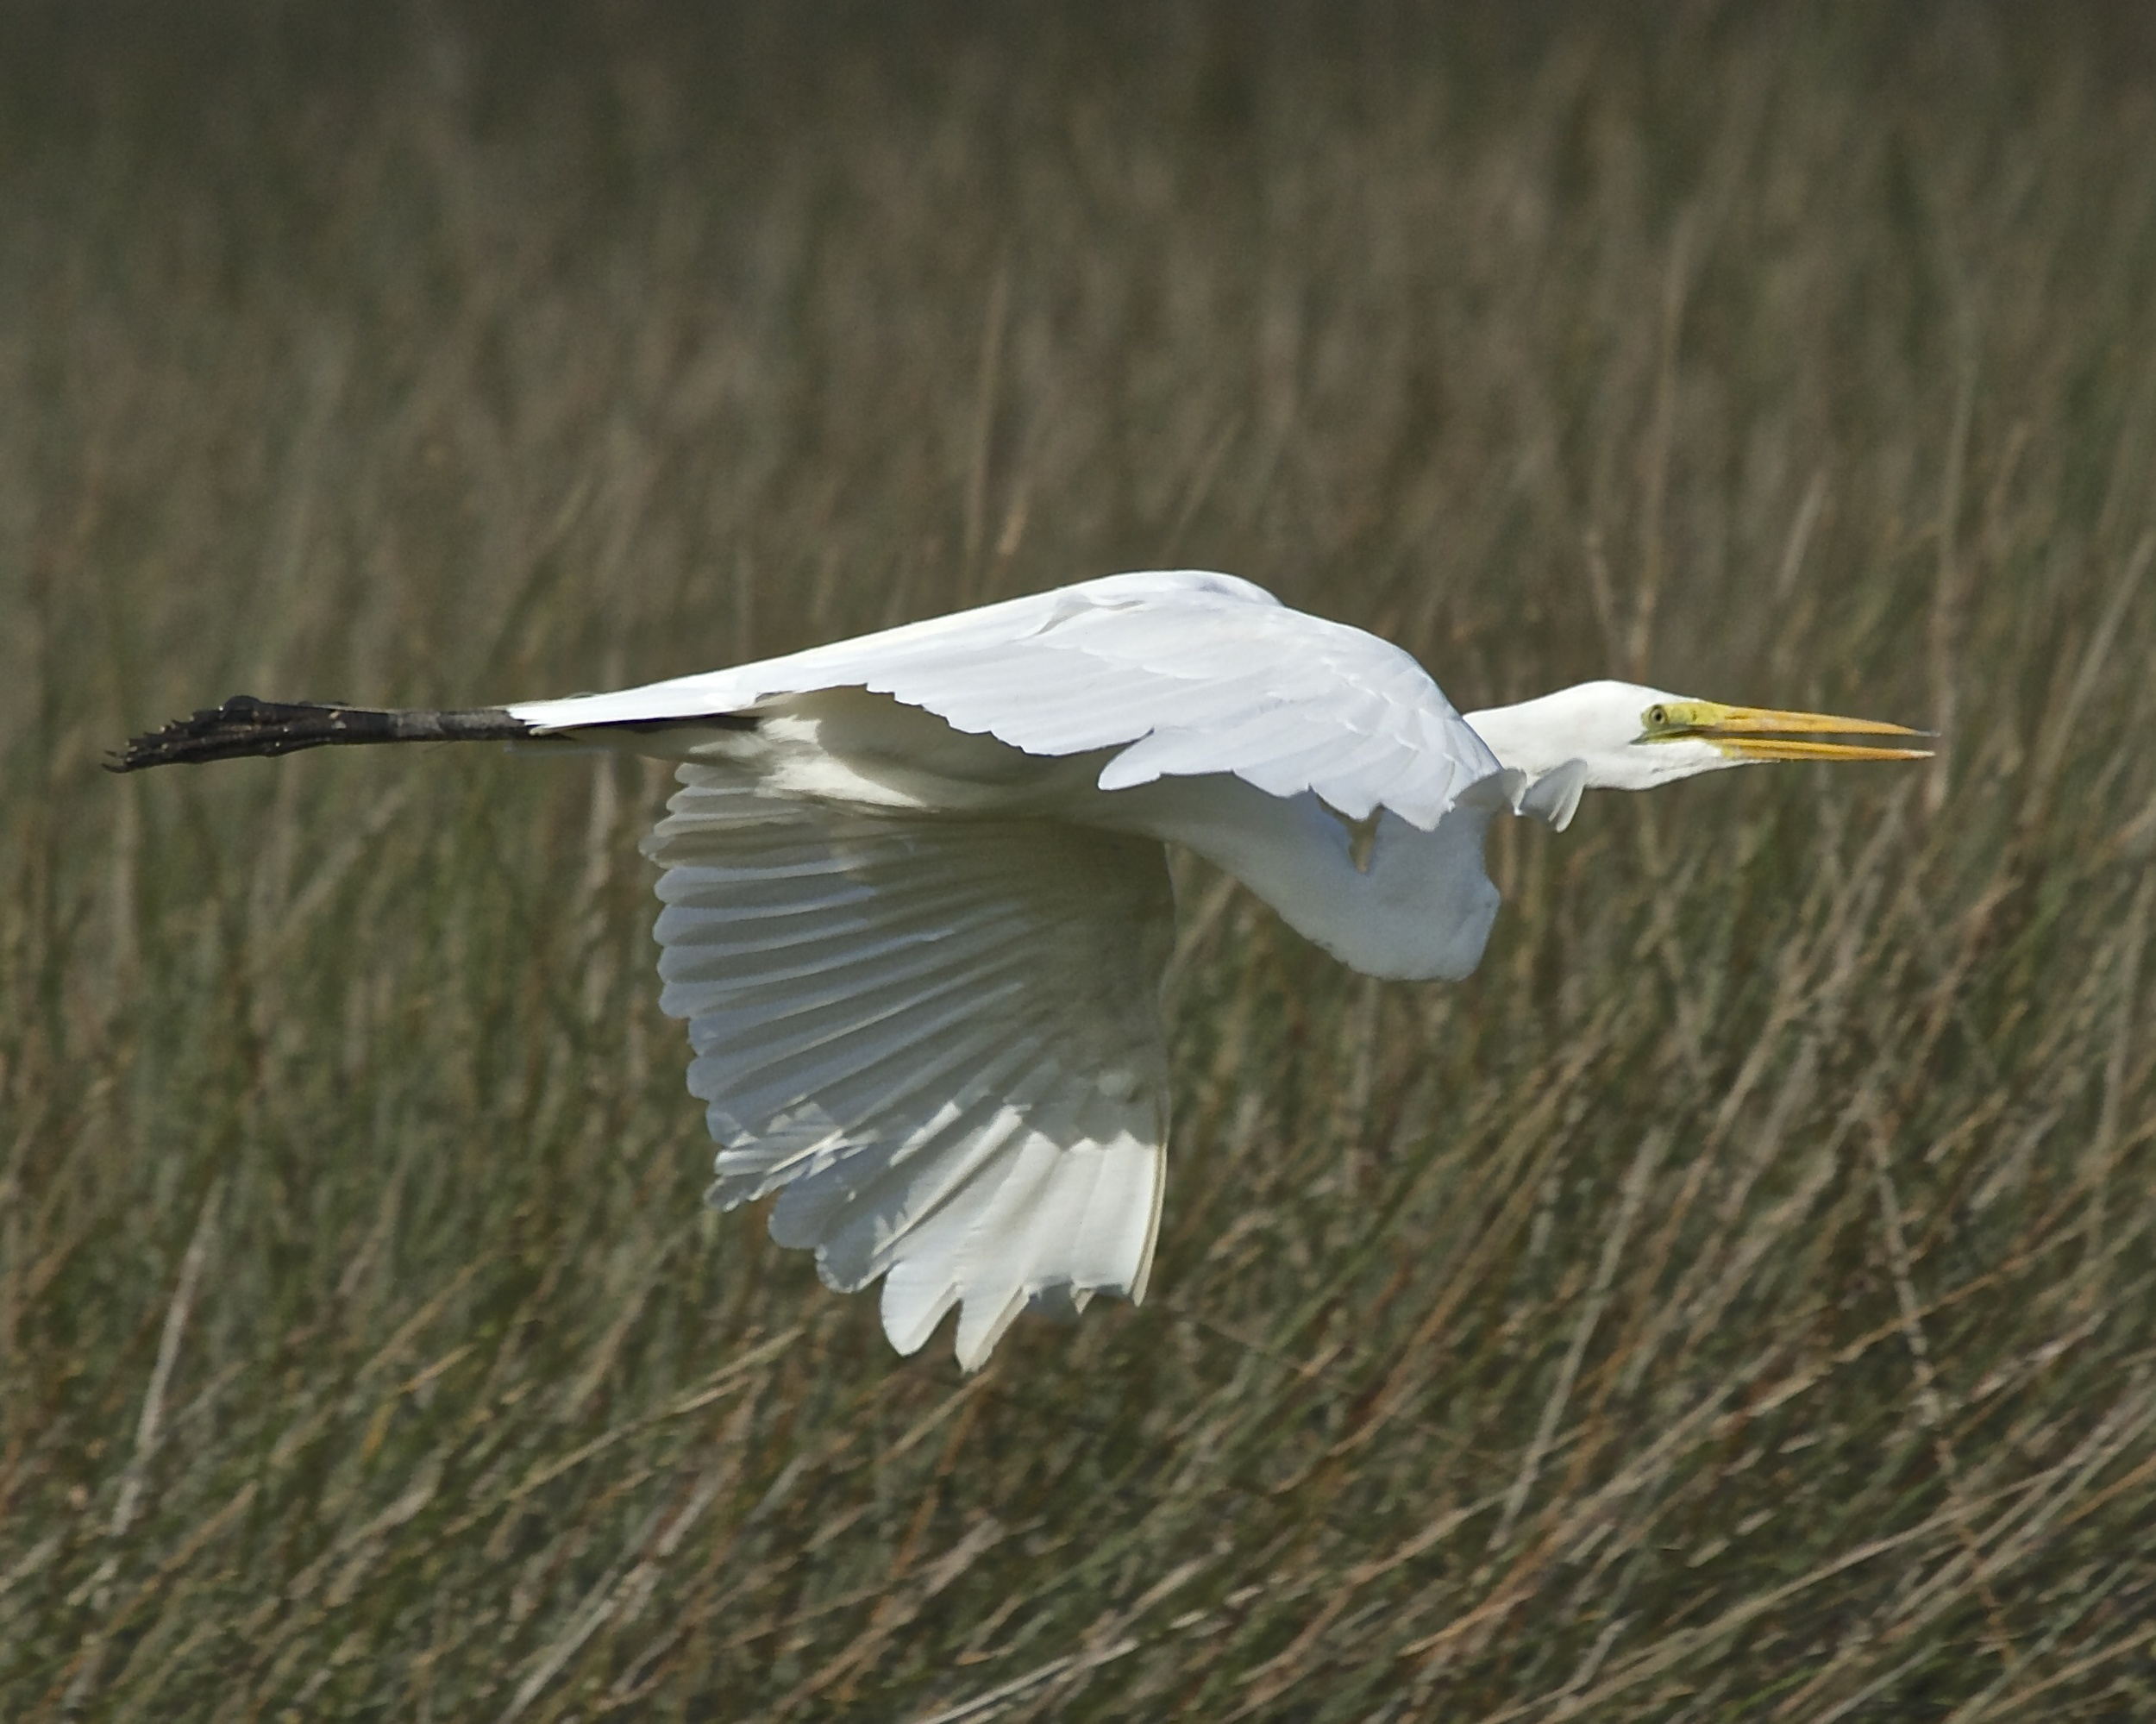 A Great Egret, an icon on the Broward,  glides by.